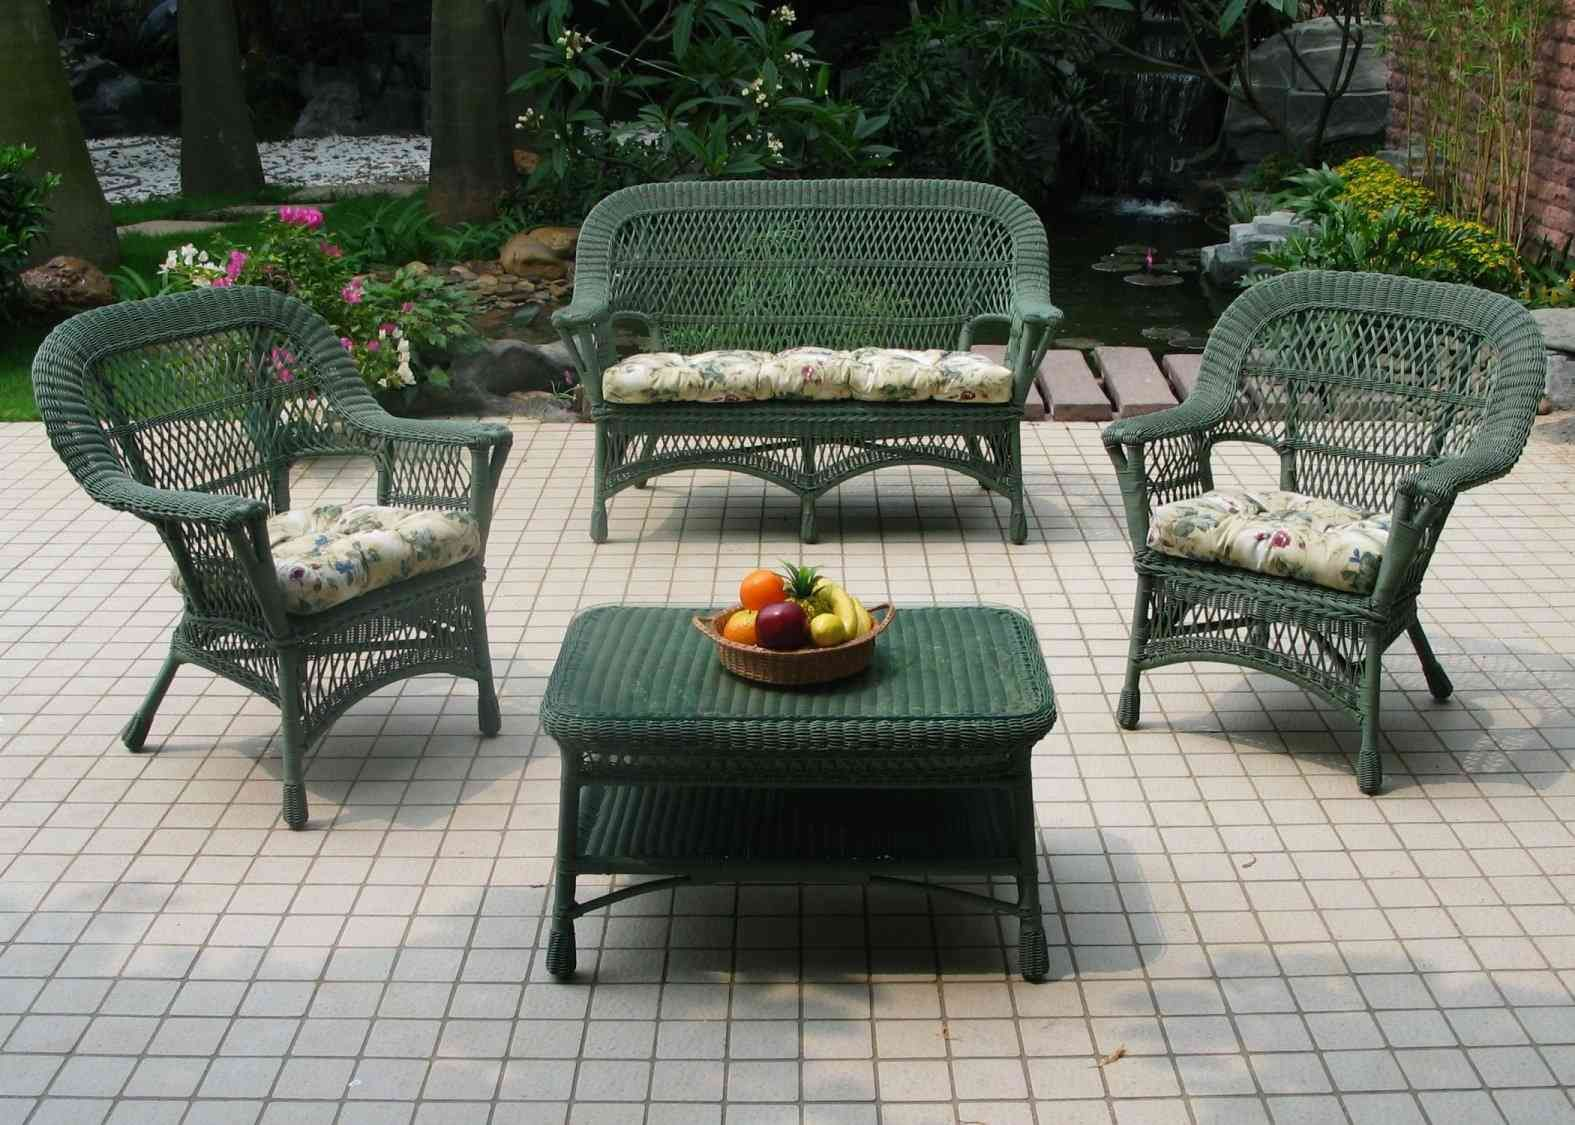 Furnitures : Classic Green Wicker Patio Furniture Set Above Ceramic Floor  Around The Plants And Flowers